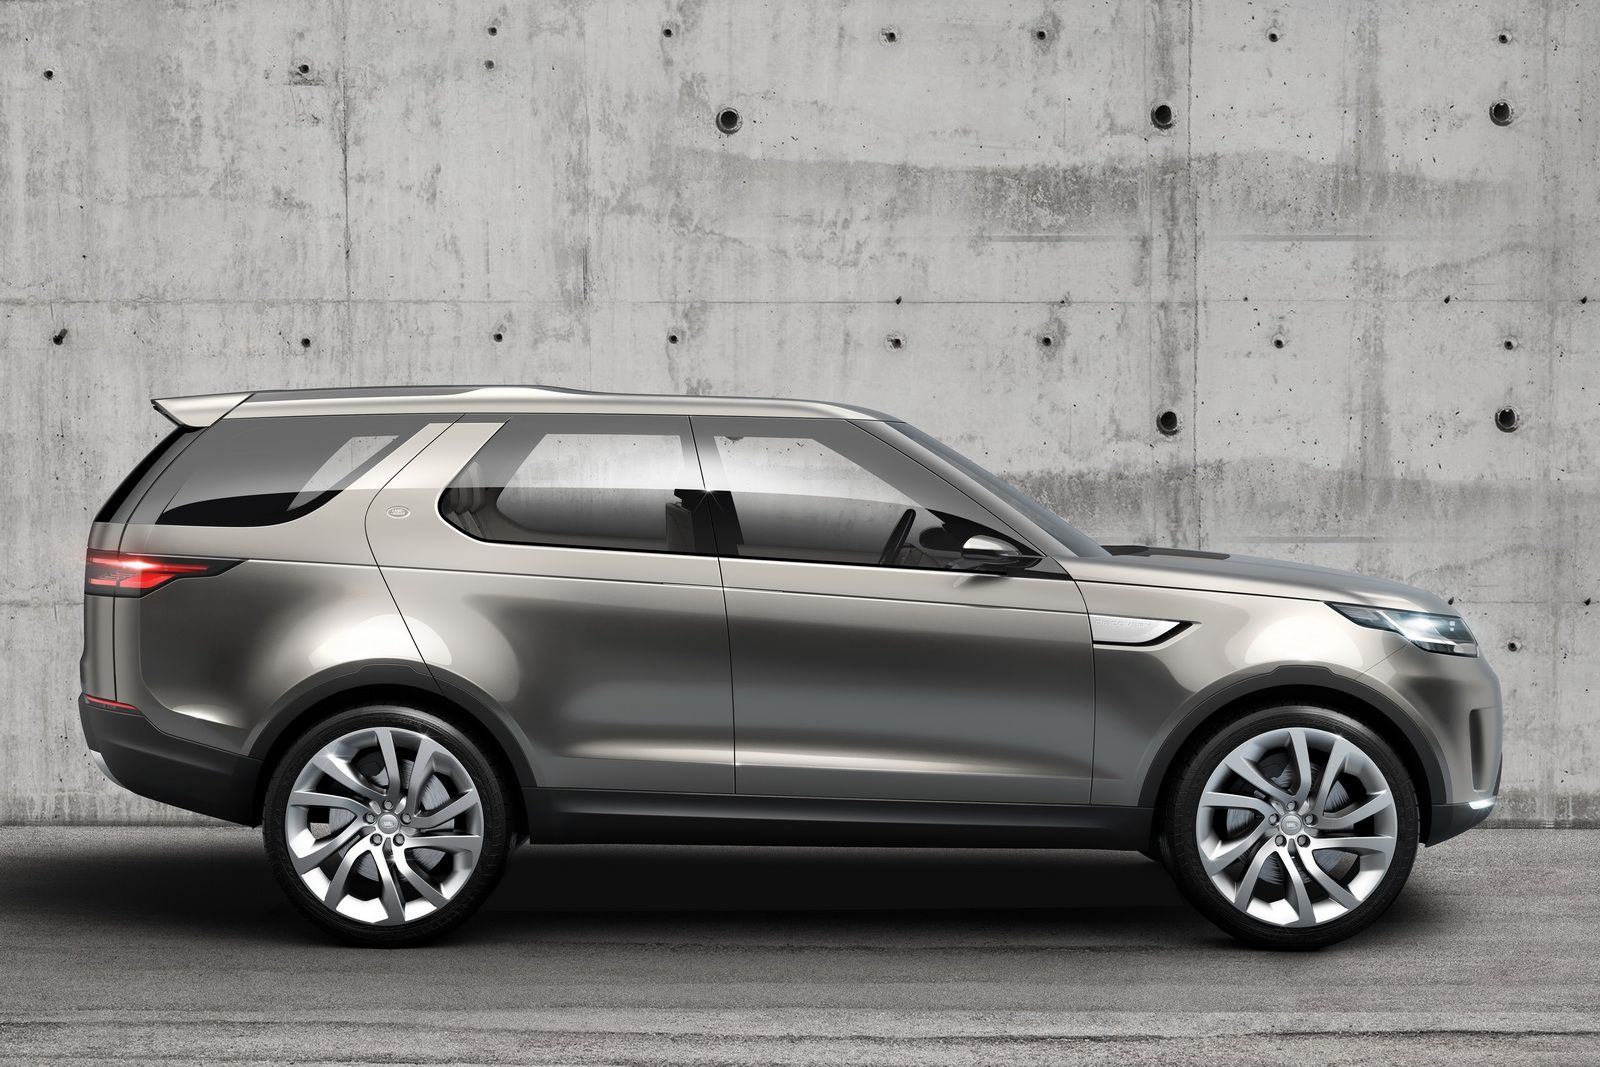 New Land Rover Discovery Vision Concept Looking All Range Rovery